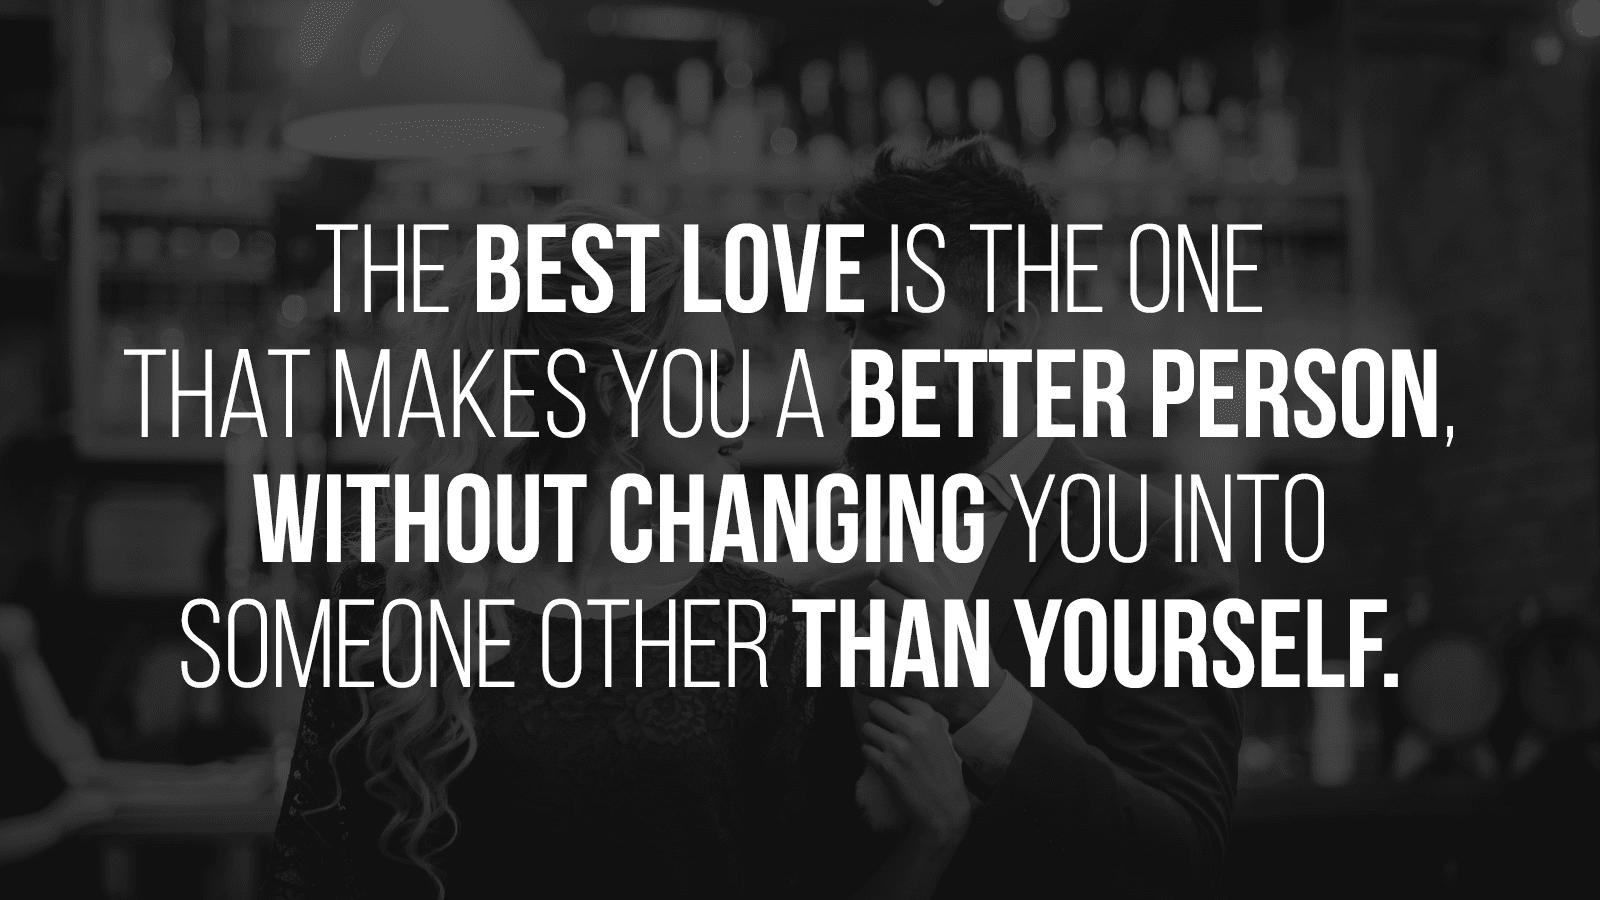 25 Love Quotes That Reveal The Reality Of Relationships And ...